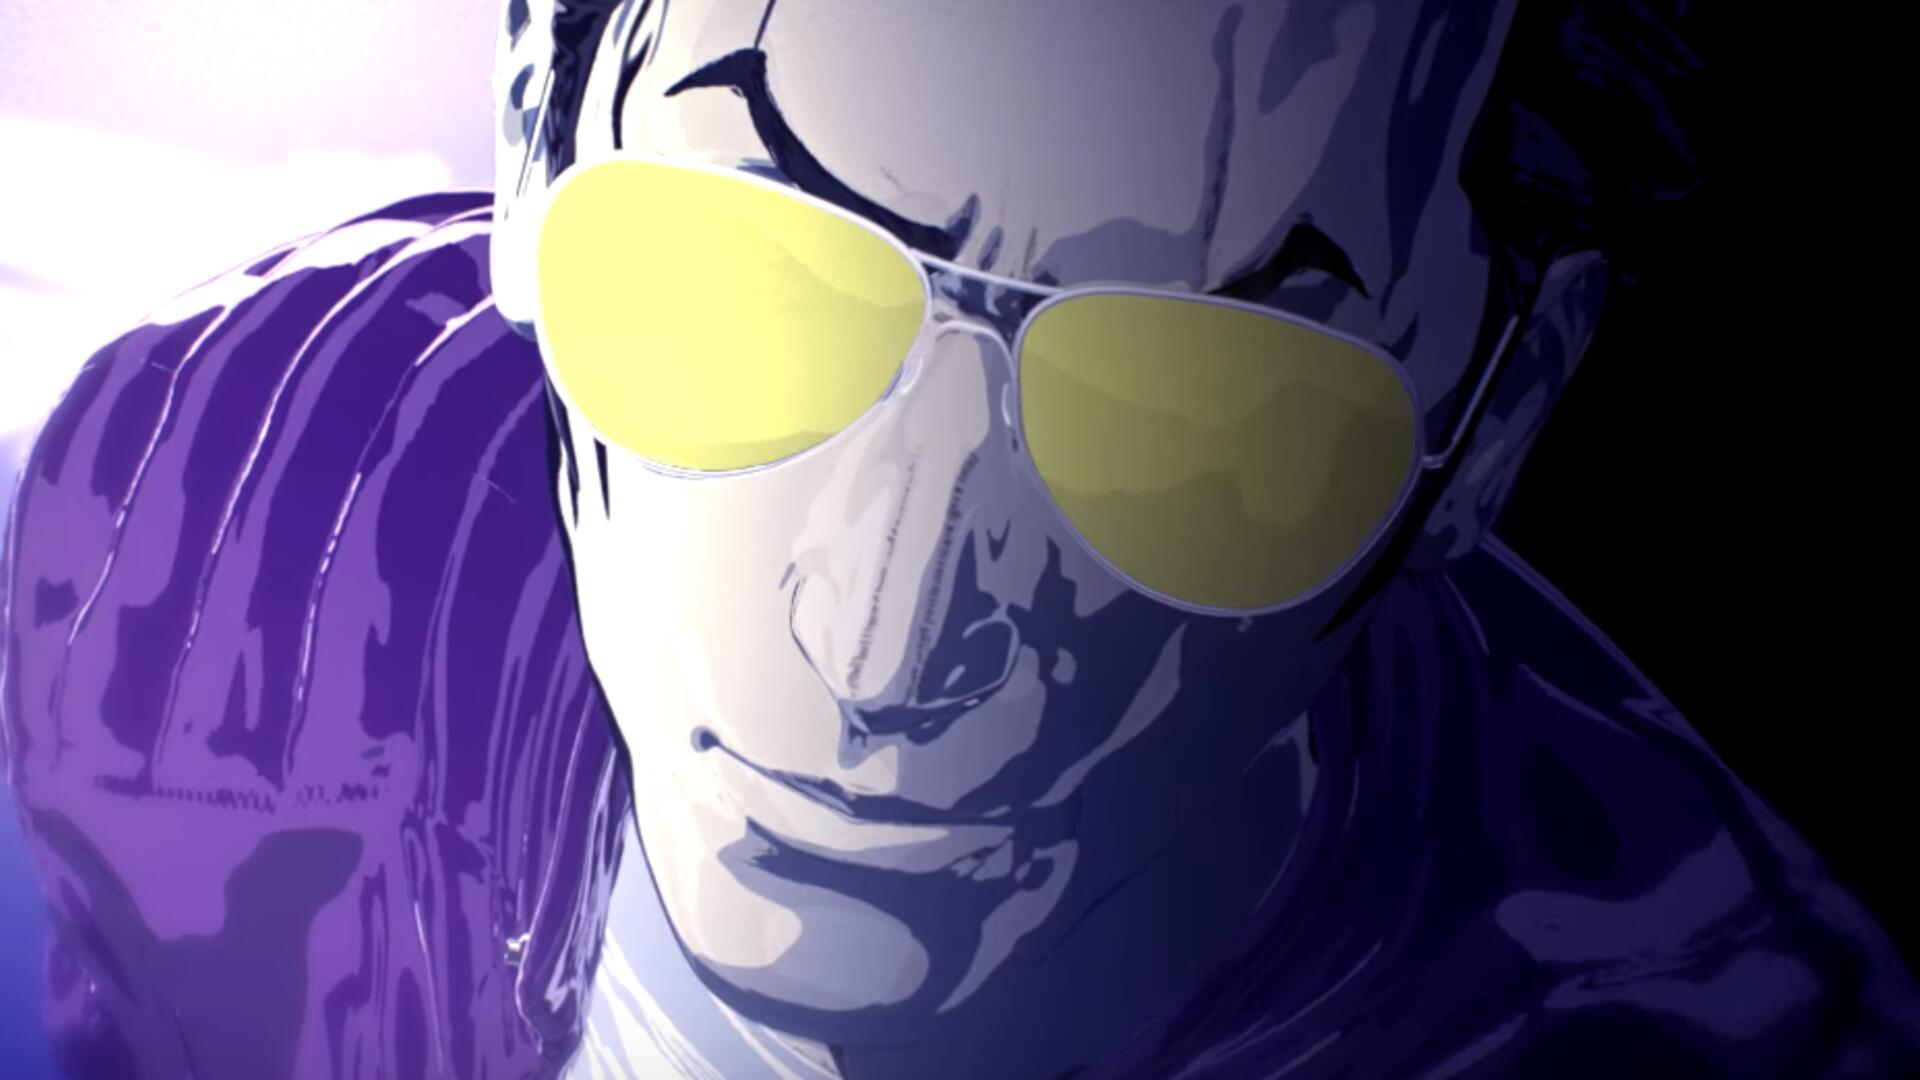 No More Heroes Travis Strikes Again is Suda 51's Indie Collaboration for the Switch